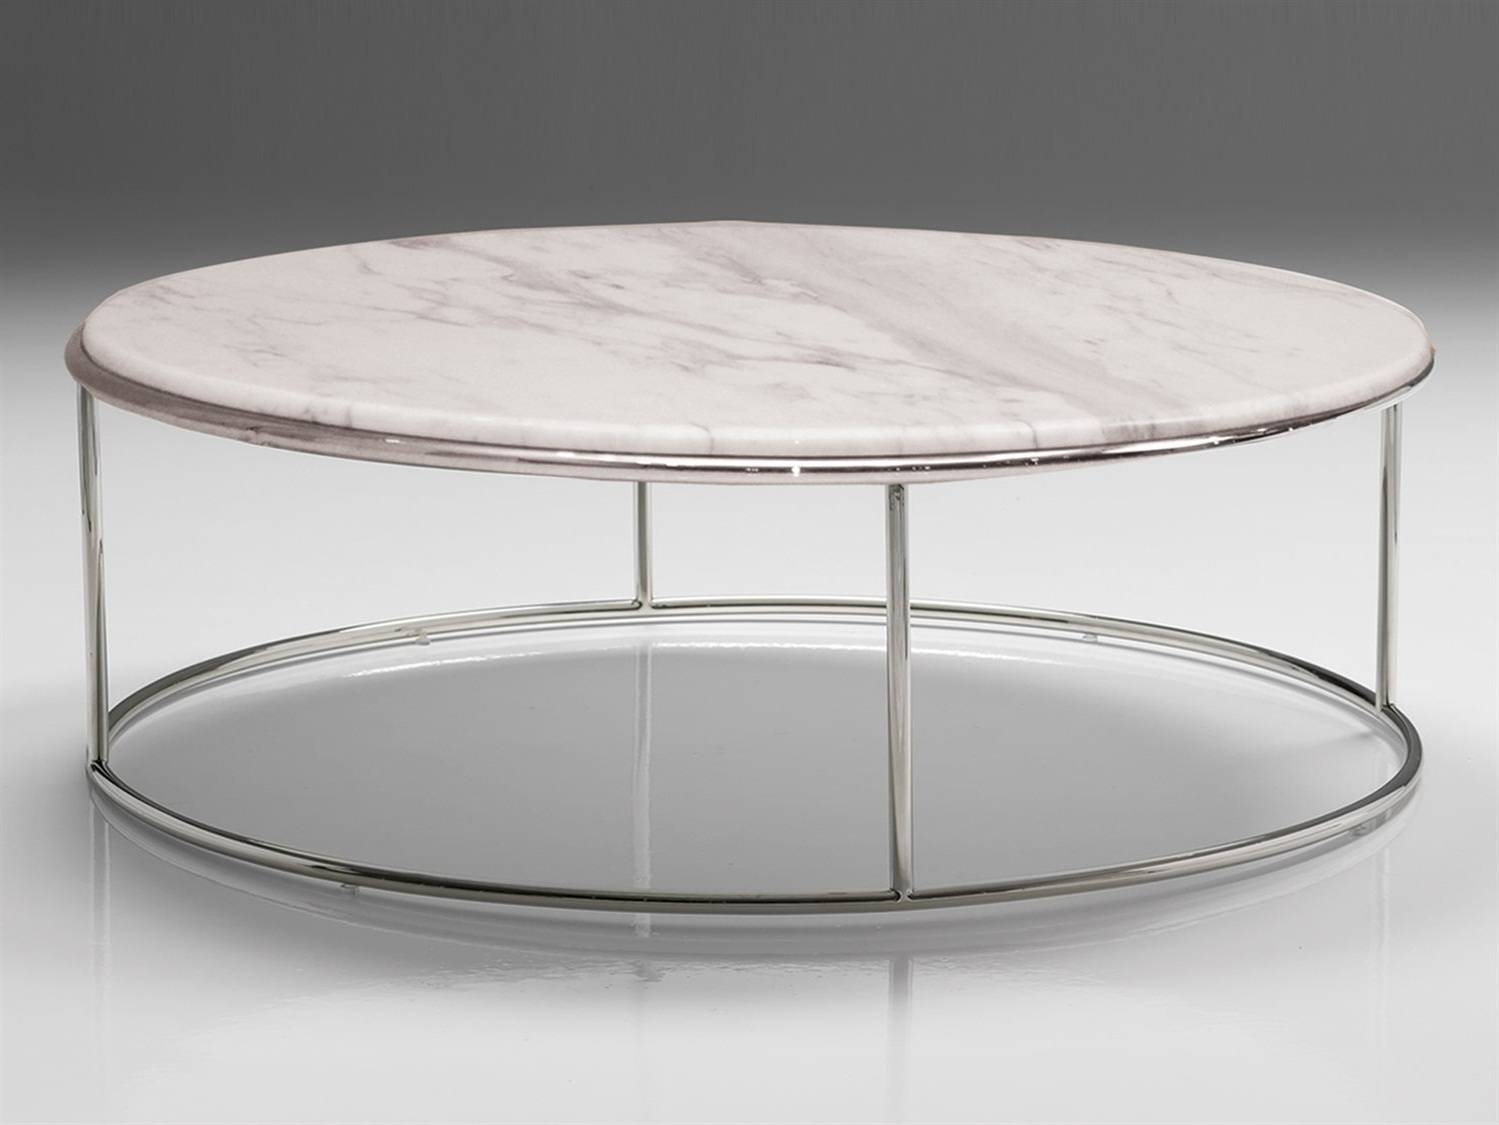 Wonderful Round Coffee Table Furniture – Round Coffee Table inside Marble Round Coffee Tables (Image 30 of 30)